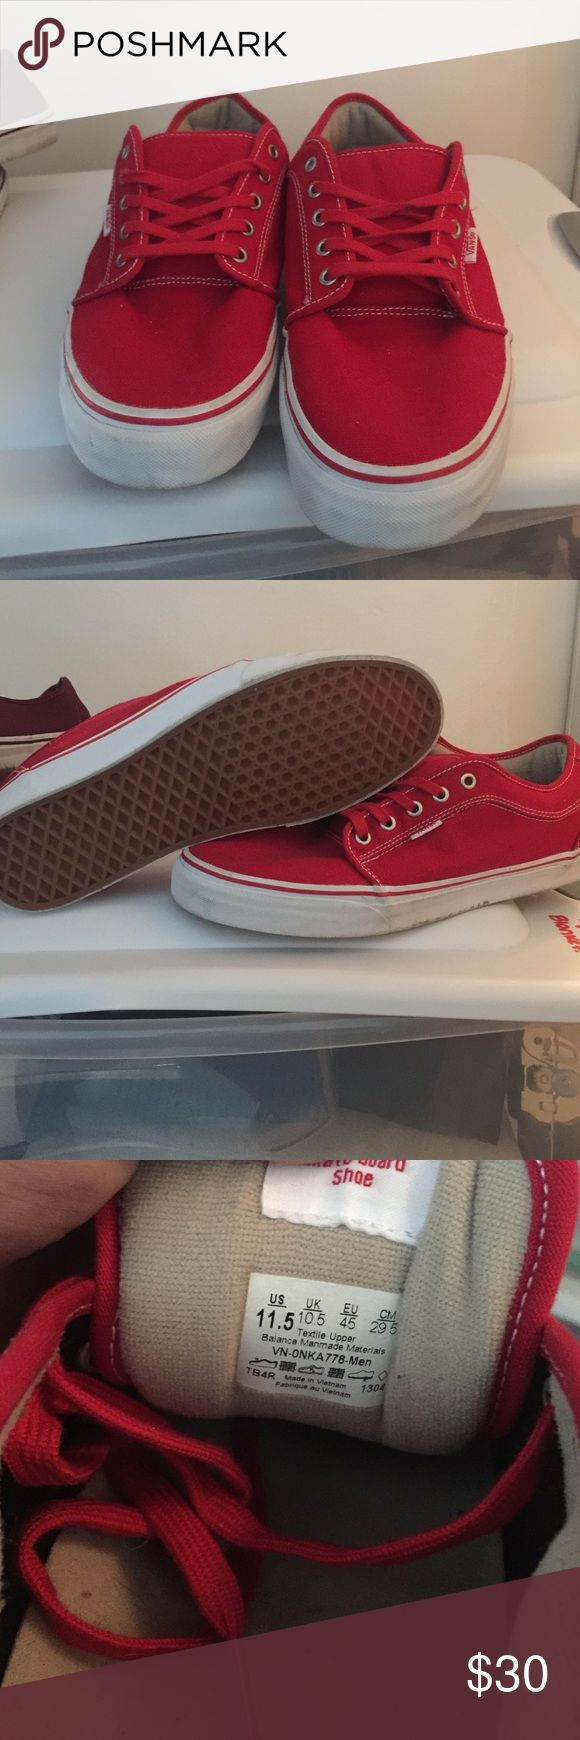 Red Vans Chukka Low sneaker size 11.5 For sale is a pair of red and white Vans Chukka Lows. These are a size 11.5 and only worn one/two times. Kept in excellent condition! Thanks! Vans Shoes Sneakers